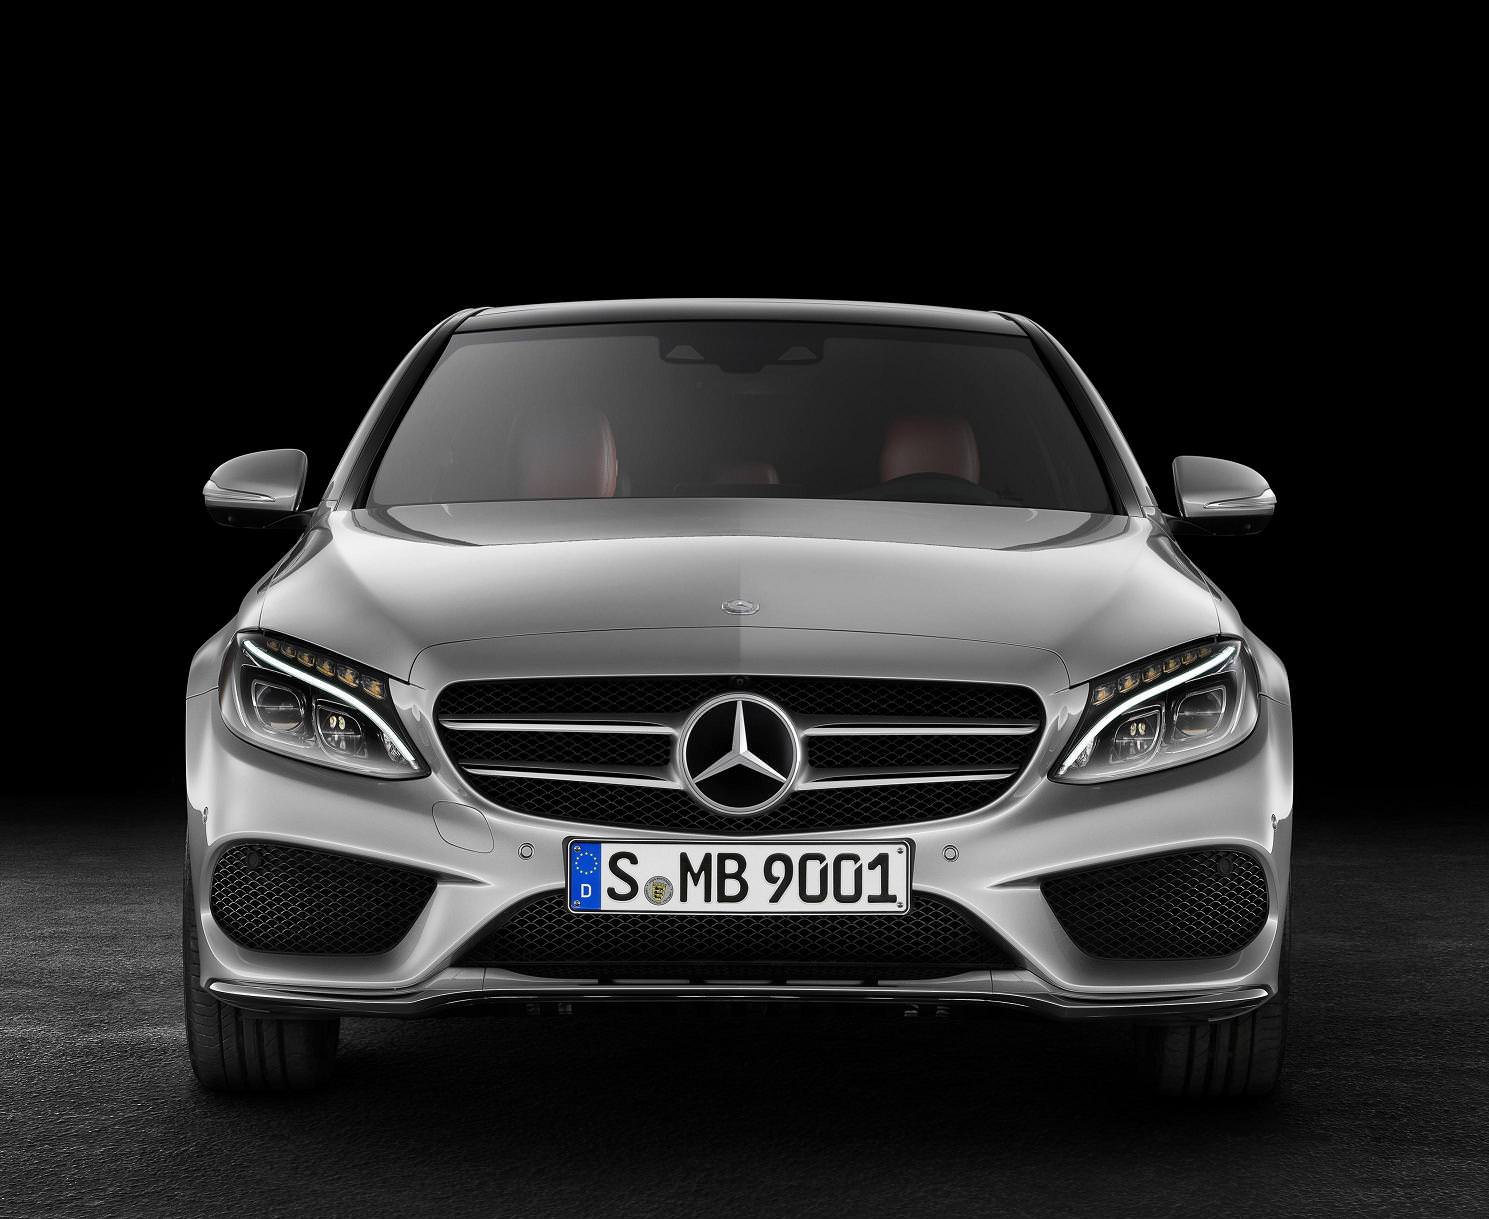 Noua Clasă C: Mercedes-Benz la superlativ